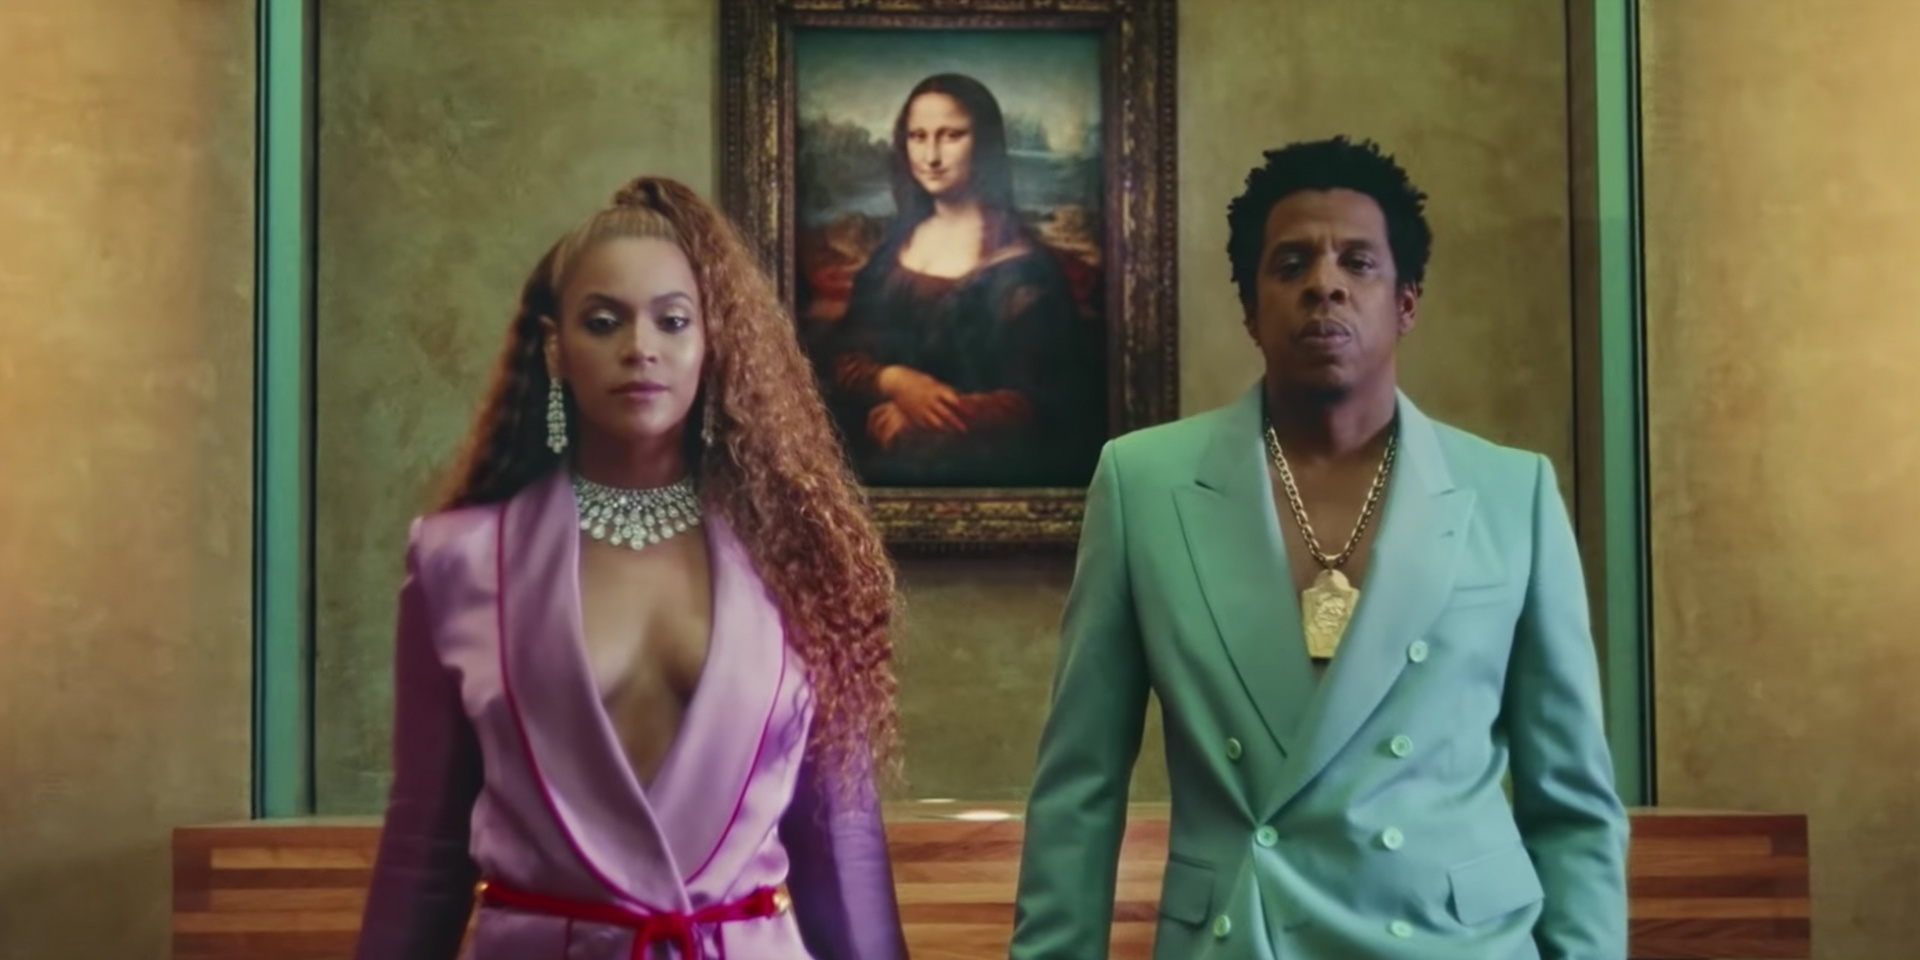 Beyoncé and Jay-Z take over the Louvre in music video for 'APESHIT' off new joint album – watch